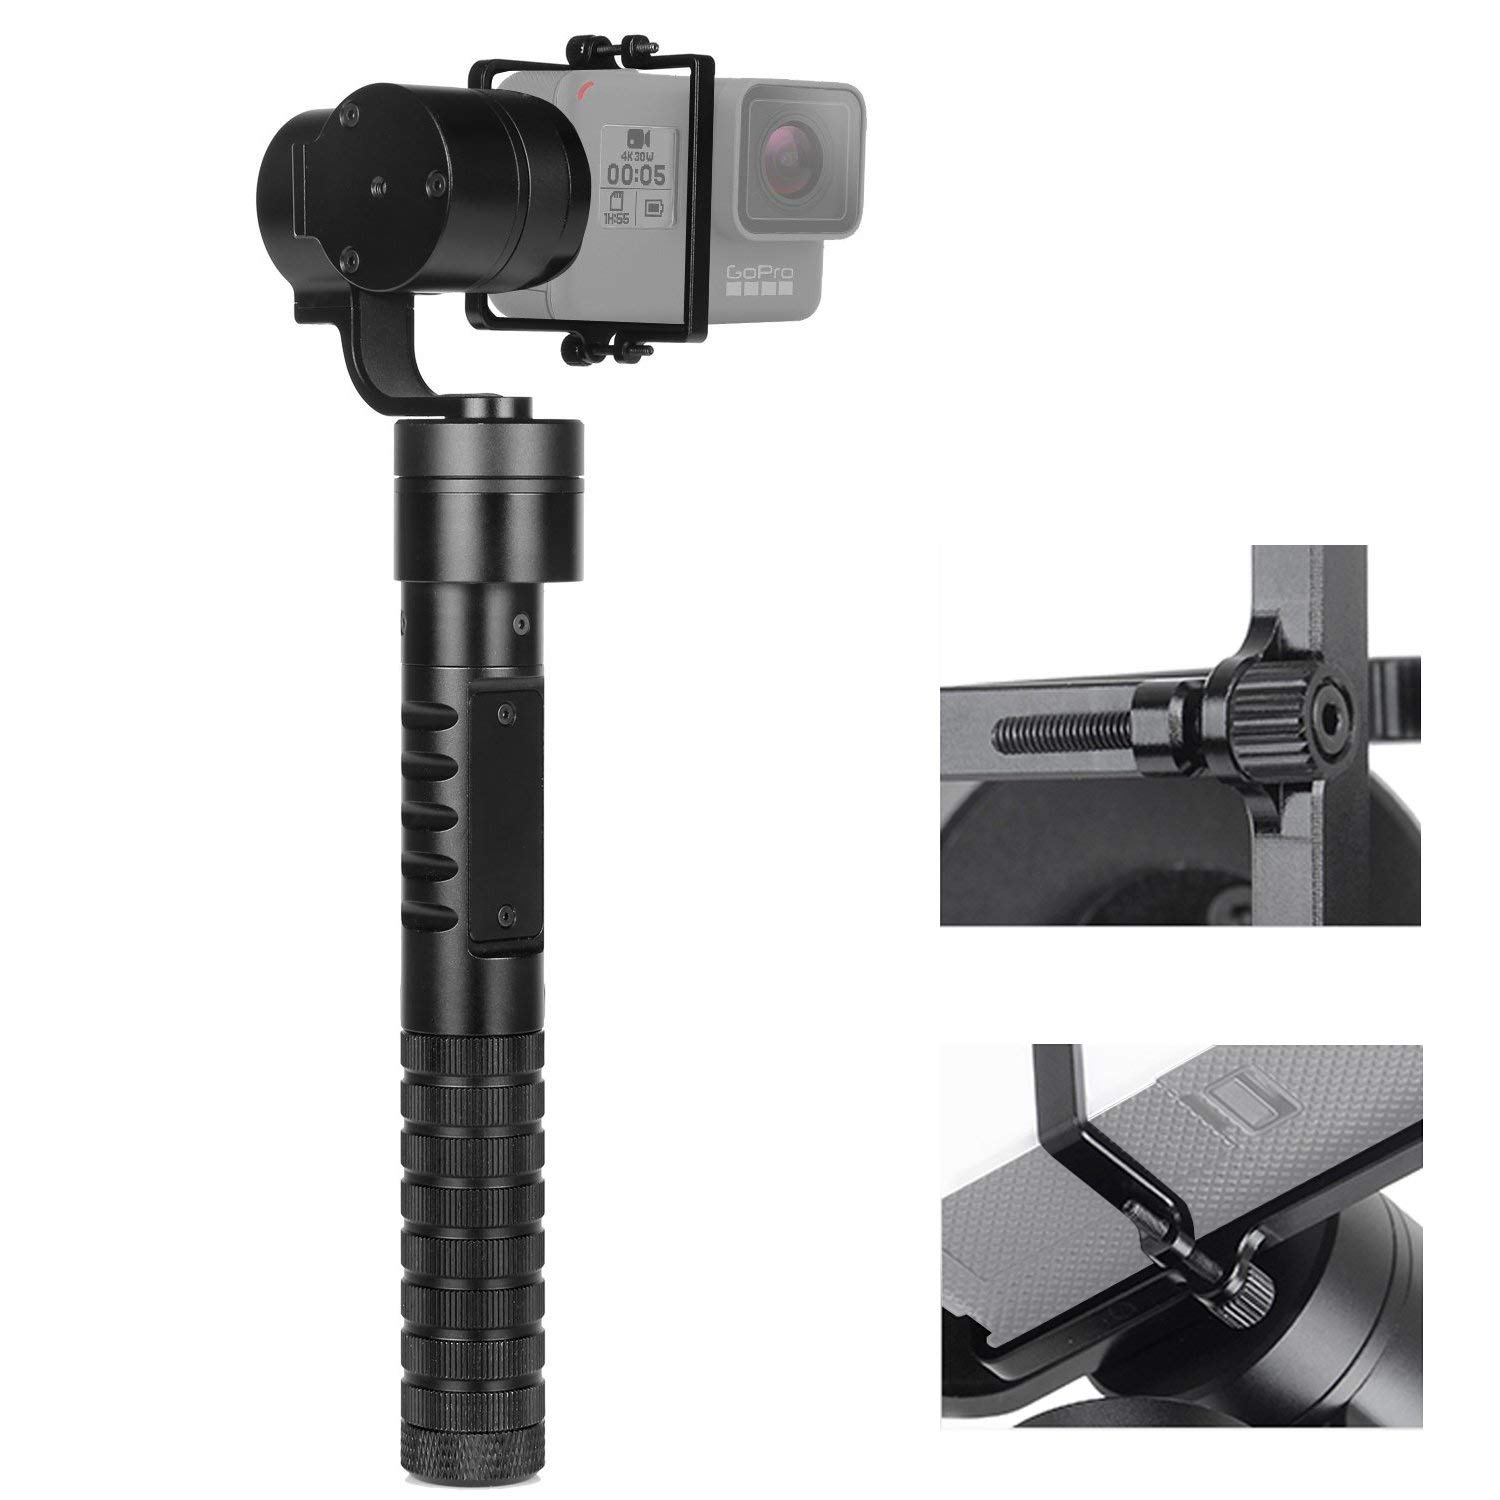 New AFI A5 Professinal Updated 3 Axis Handheld Gimbal Action Camera Stabilizer Gimbal Selfie Stick for GoPro Hero 6 5 4 3+ fpv 3 axis cnc metal brushless gimbal with controller for dji phantom camera drone for gopro 3 4 action sport camera only 180g